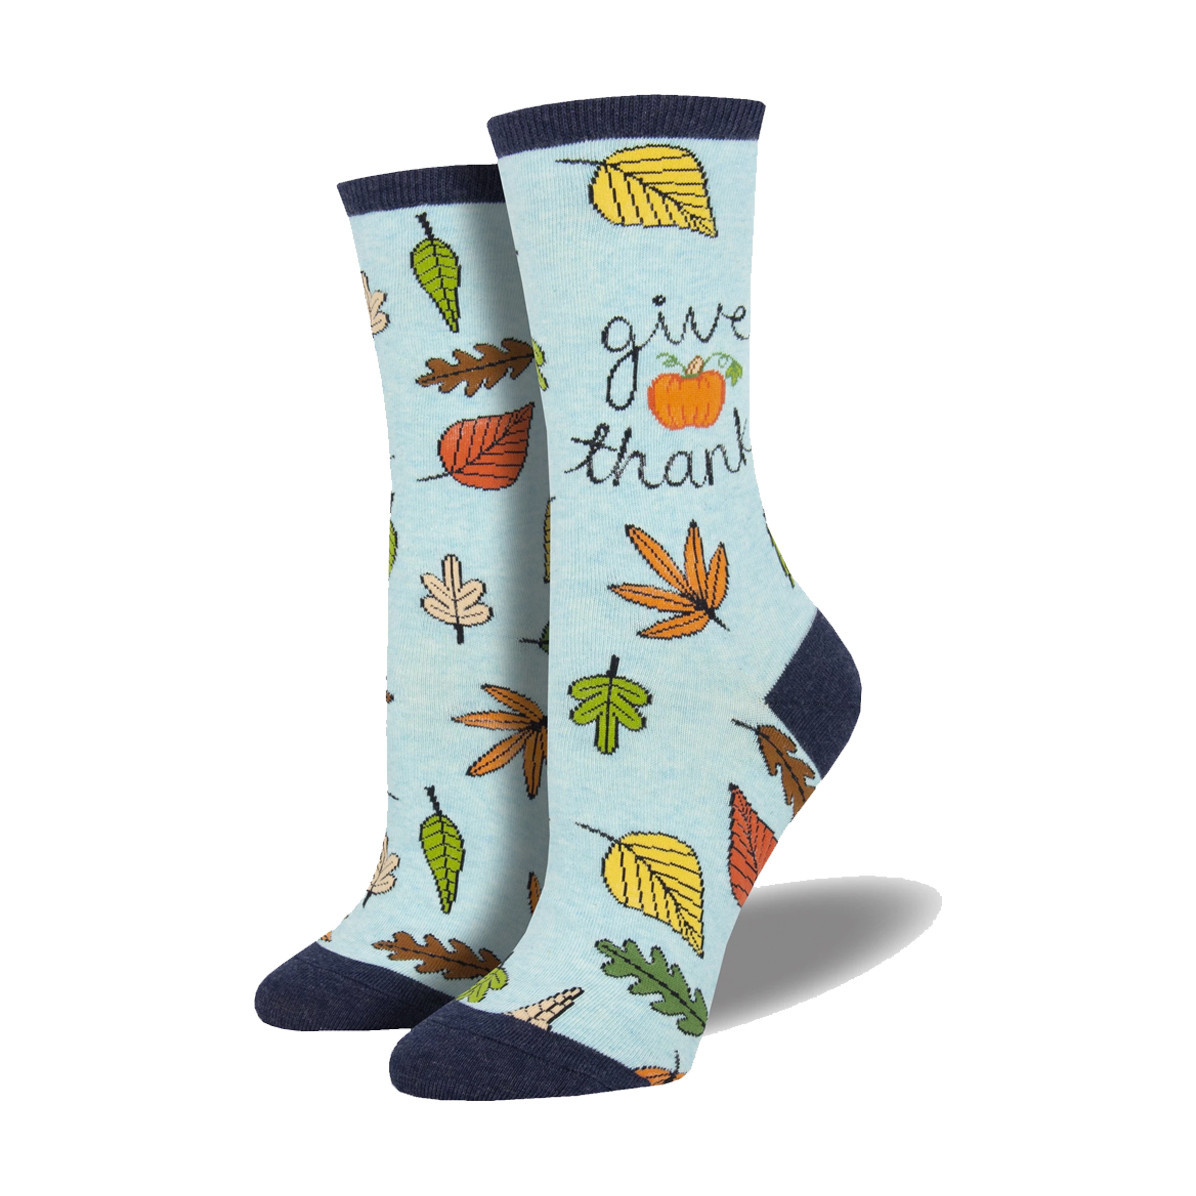 Socksmith Socksmith Women's Cotton Blend Socks Give Thanks